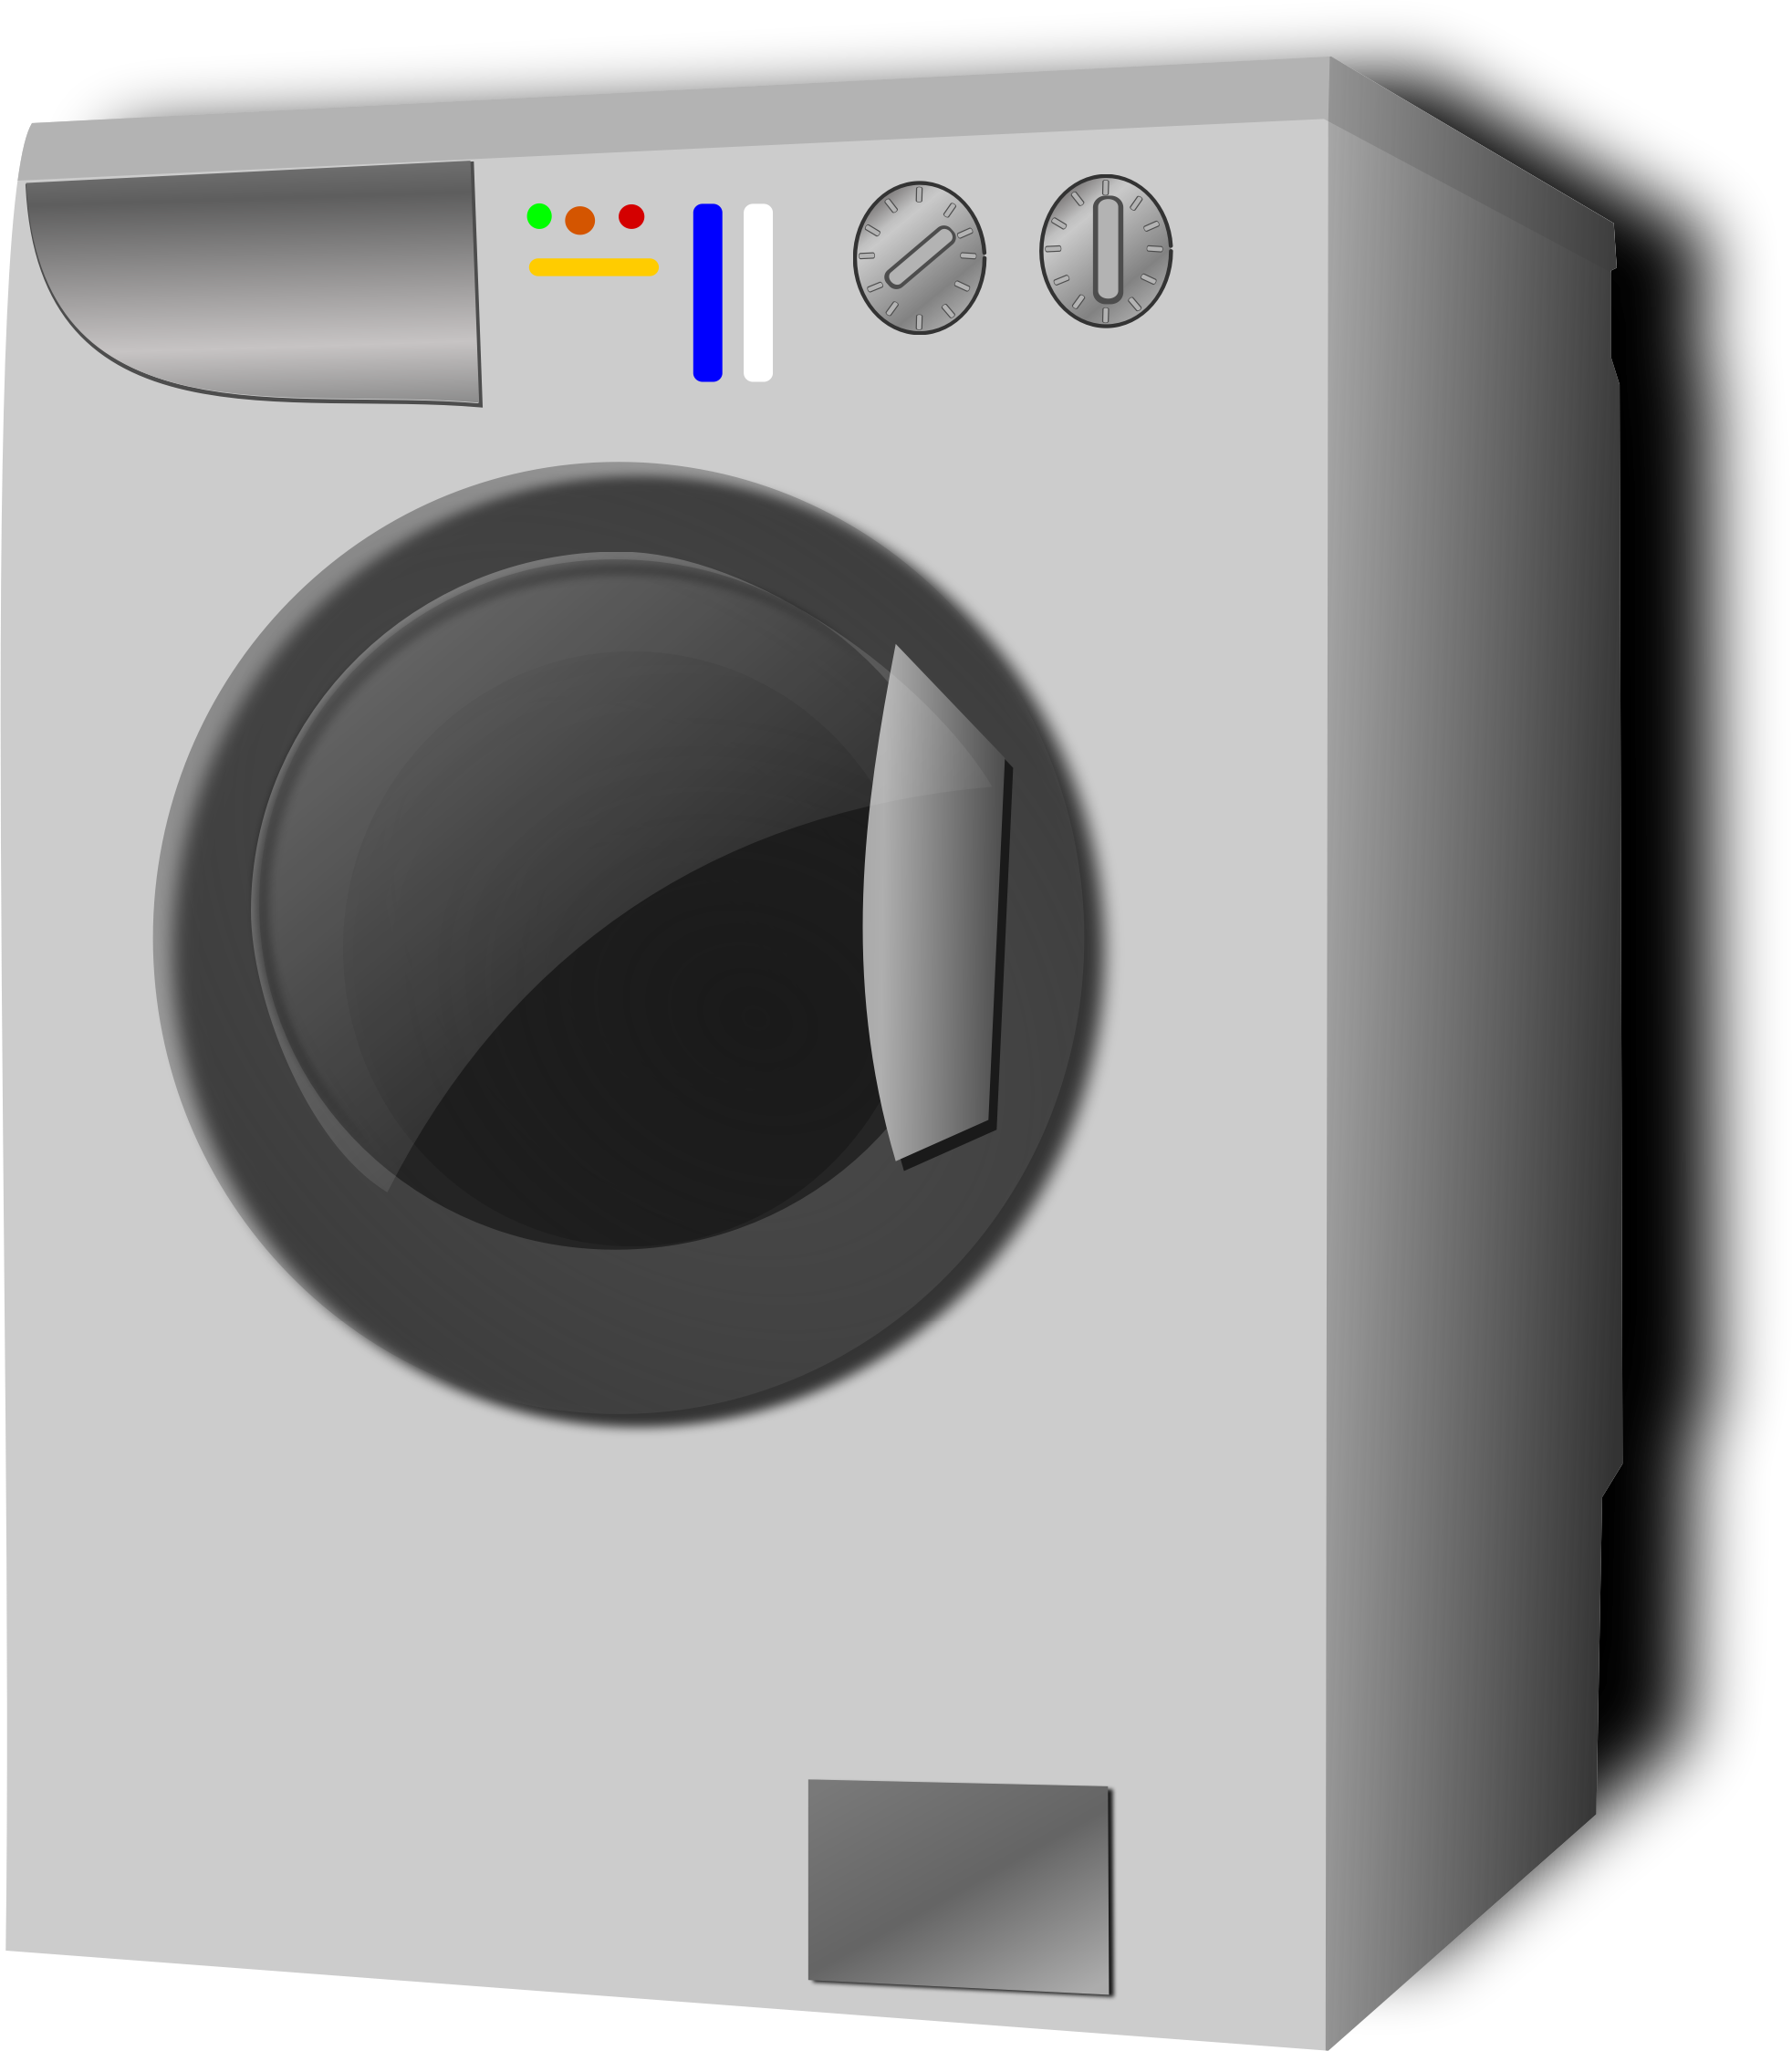 Washing machine clipart images clip free stock Washing machine open clipart - ClipartFest clip free stock